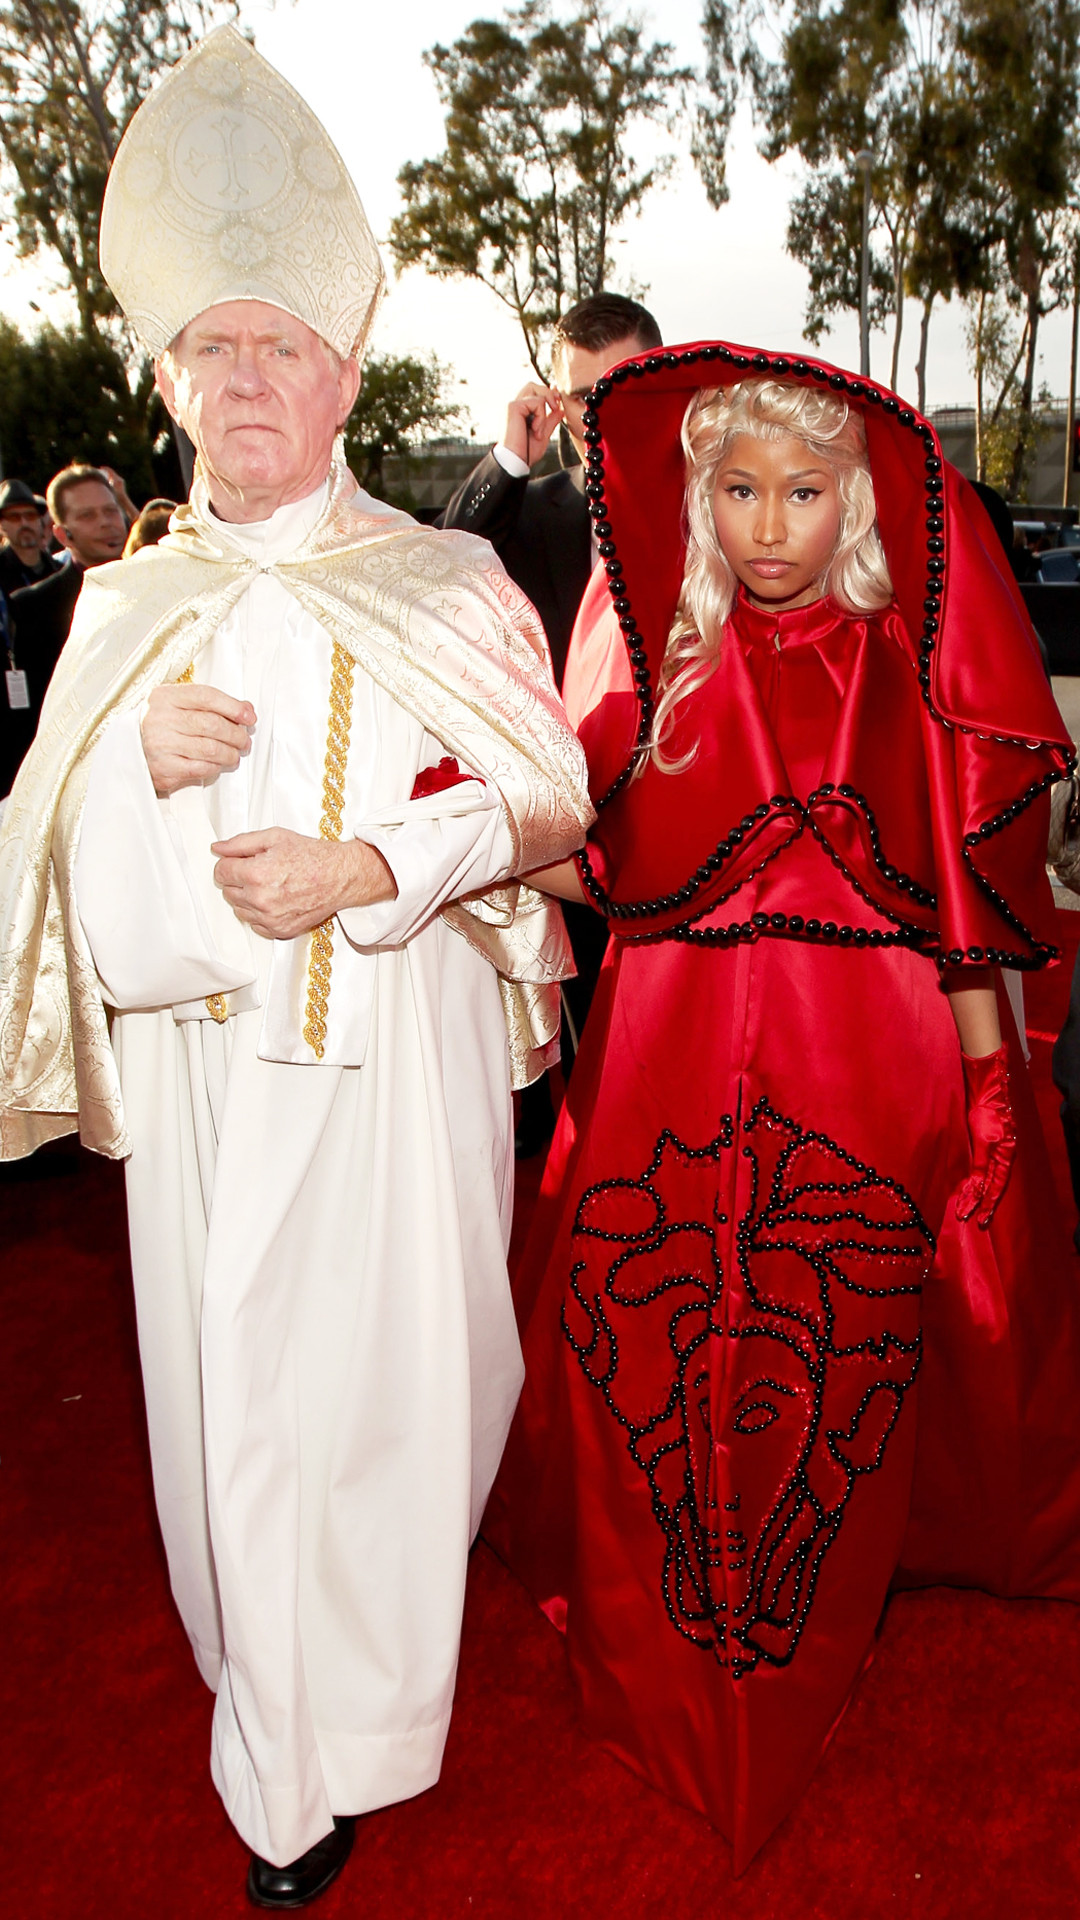 ESC: Fashion and Religion, Nicki Minaj